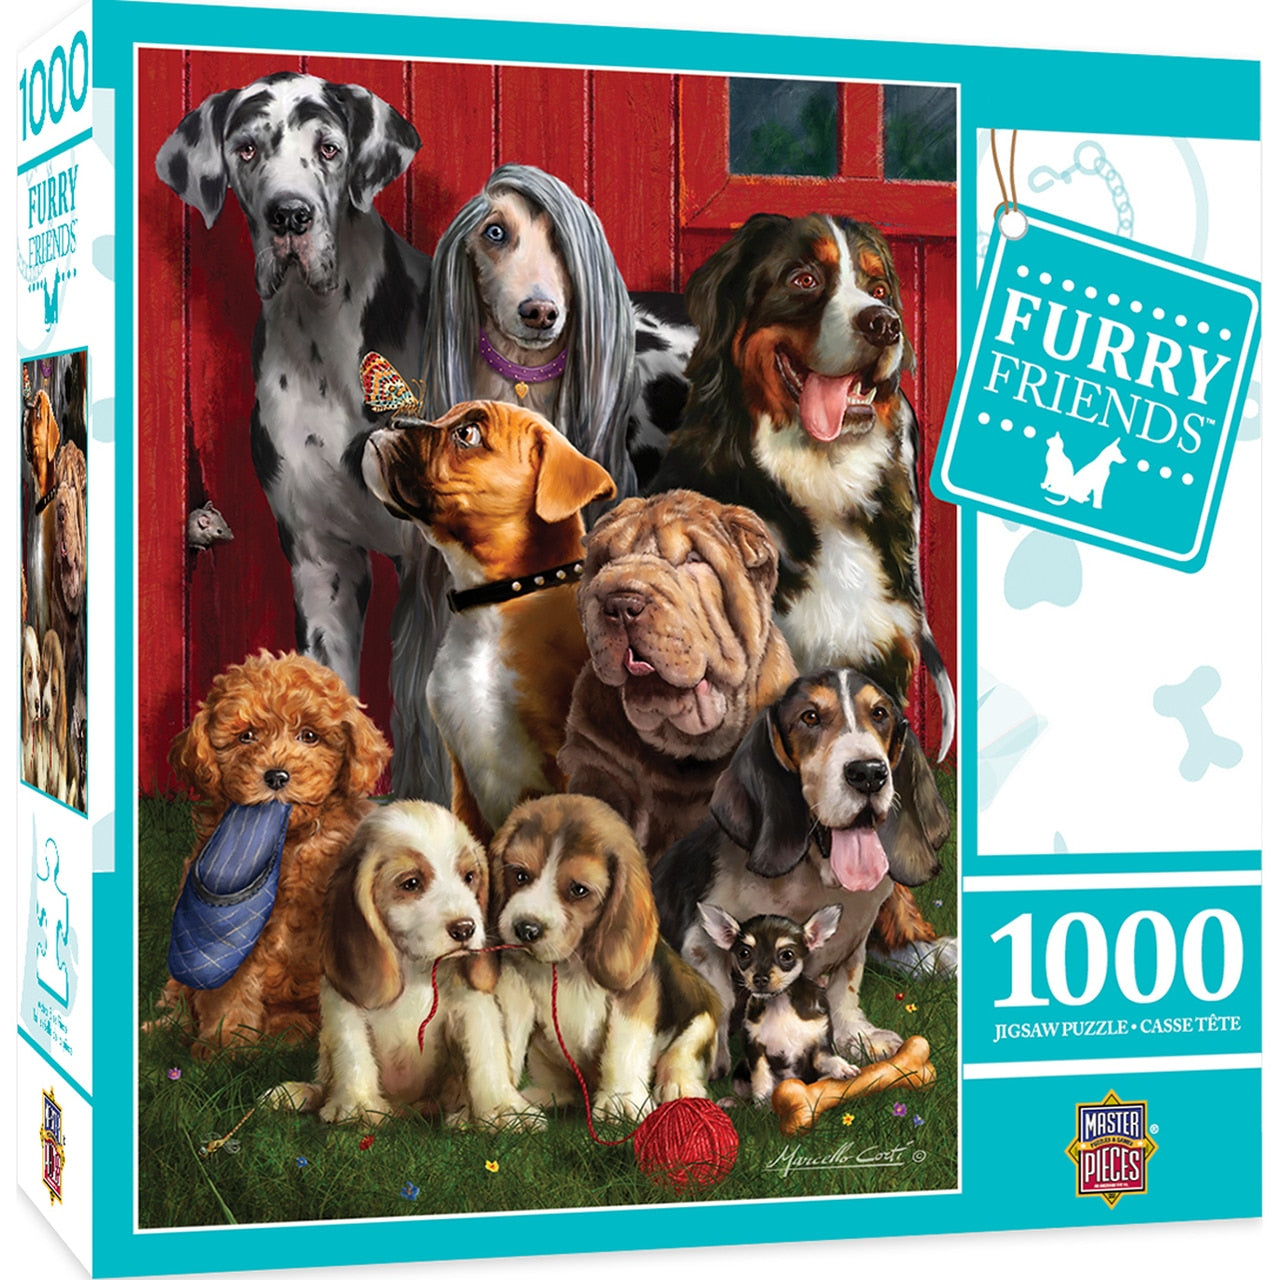 Furry Friends - Sitting Pretty 1000 Piece Puzzle